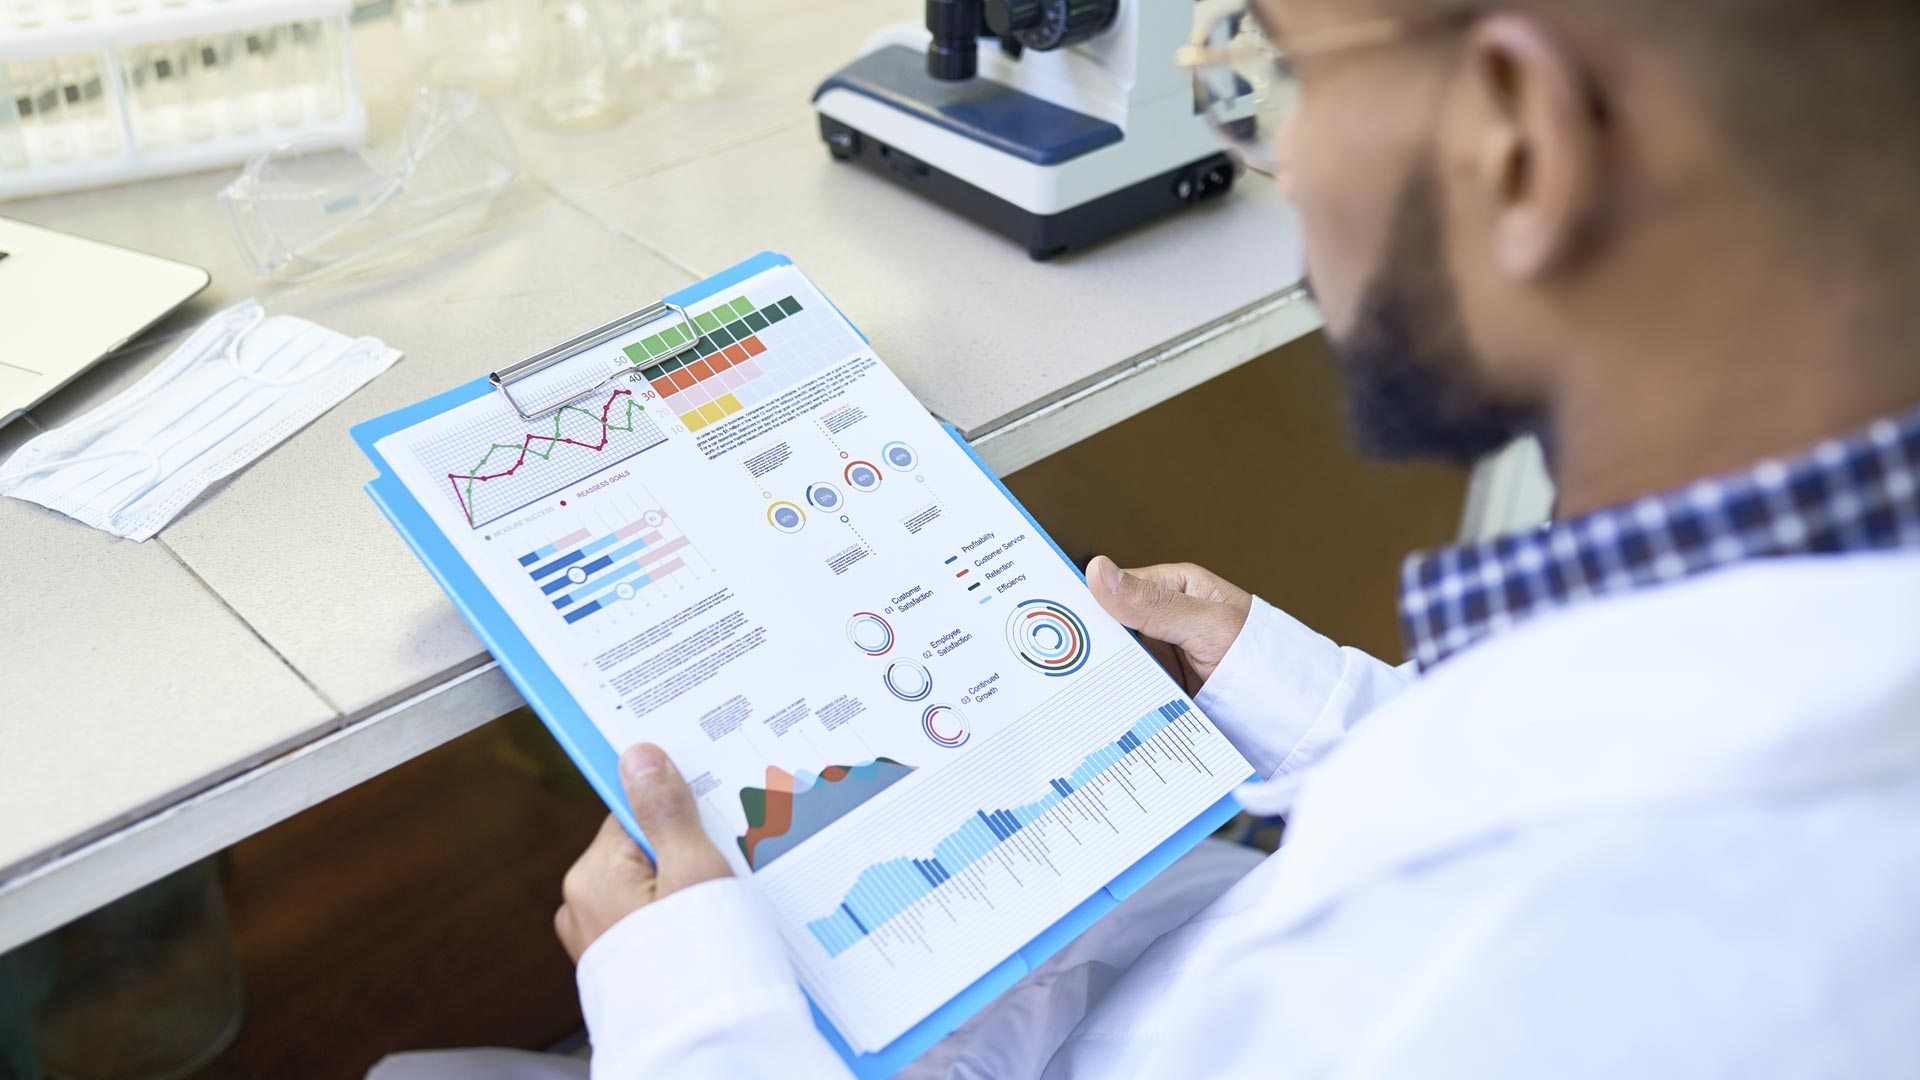 Scientist looking at medical data report